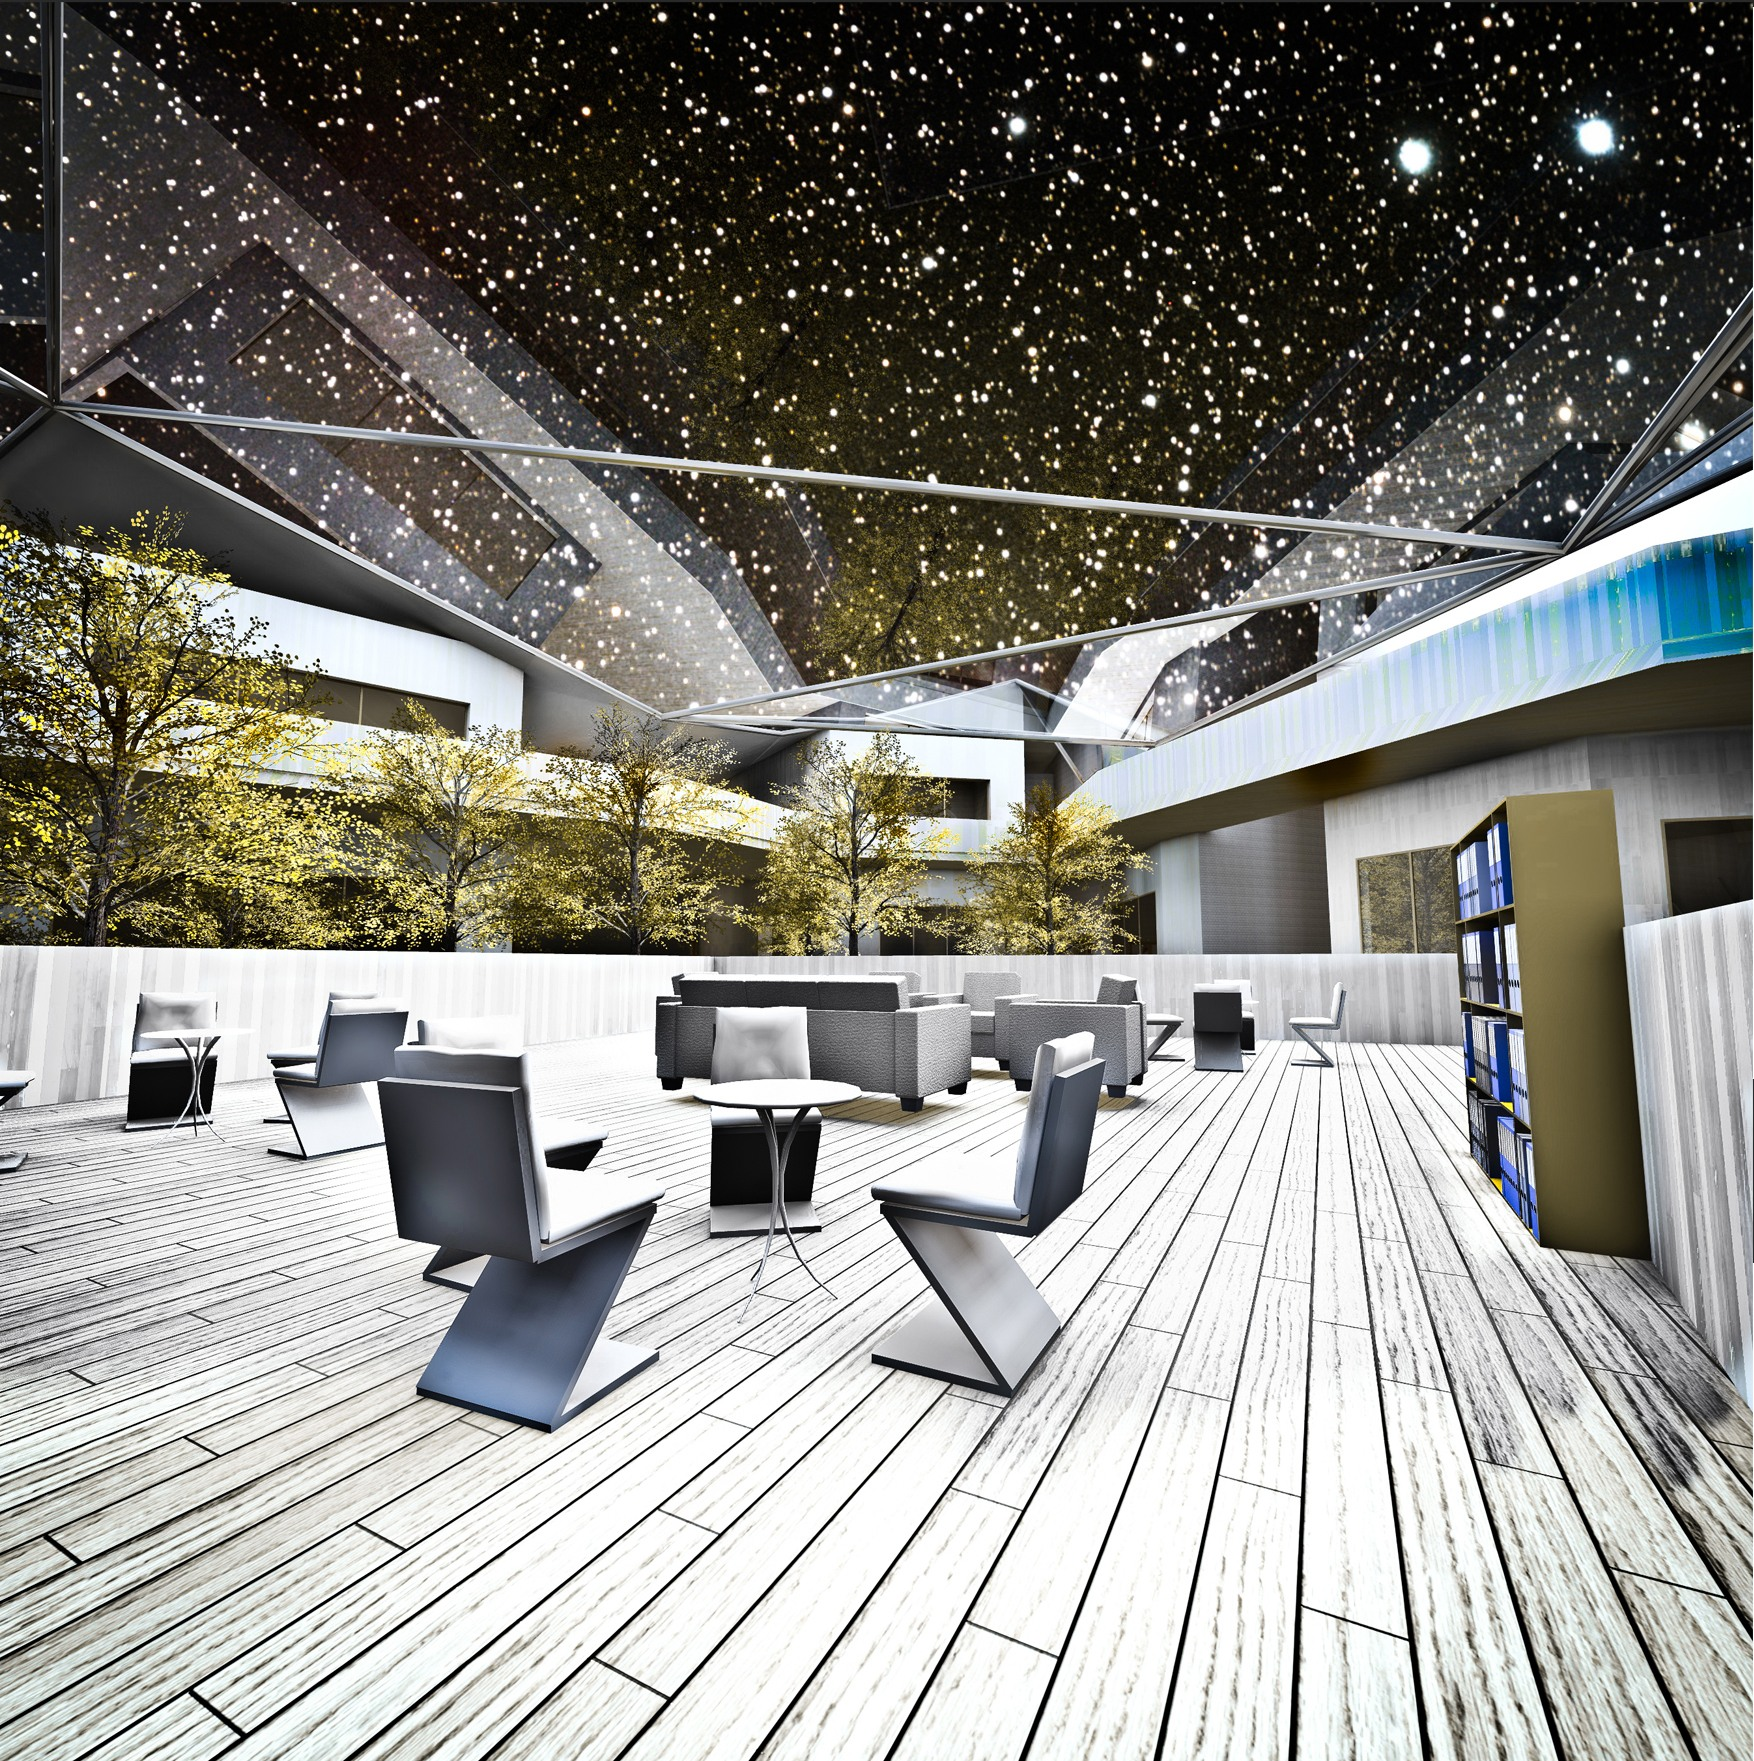 Space and Astronomy Research Center | Mohammed Al-Maziad